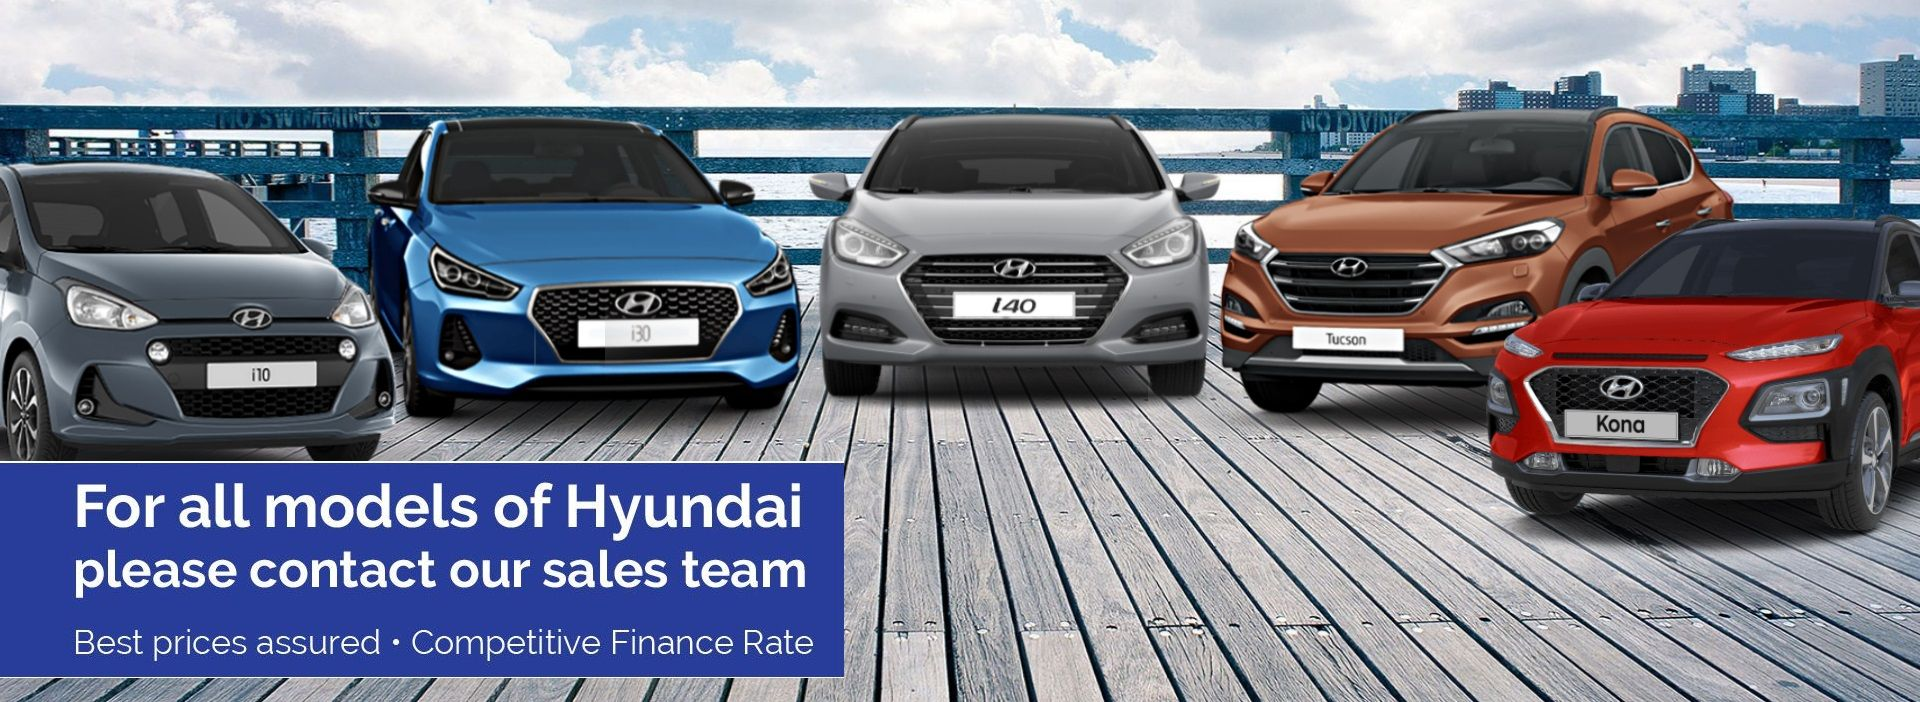 How to Contact Hyundai How to Contact Hyundai new photo